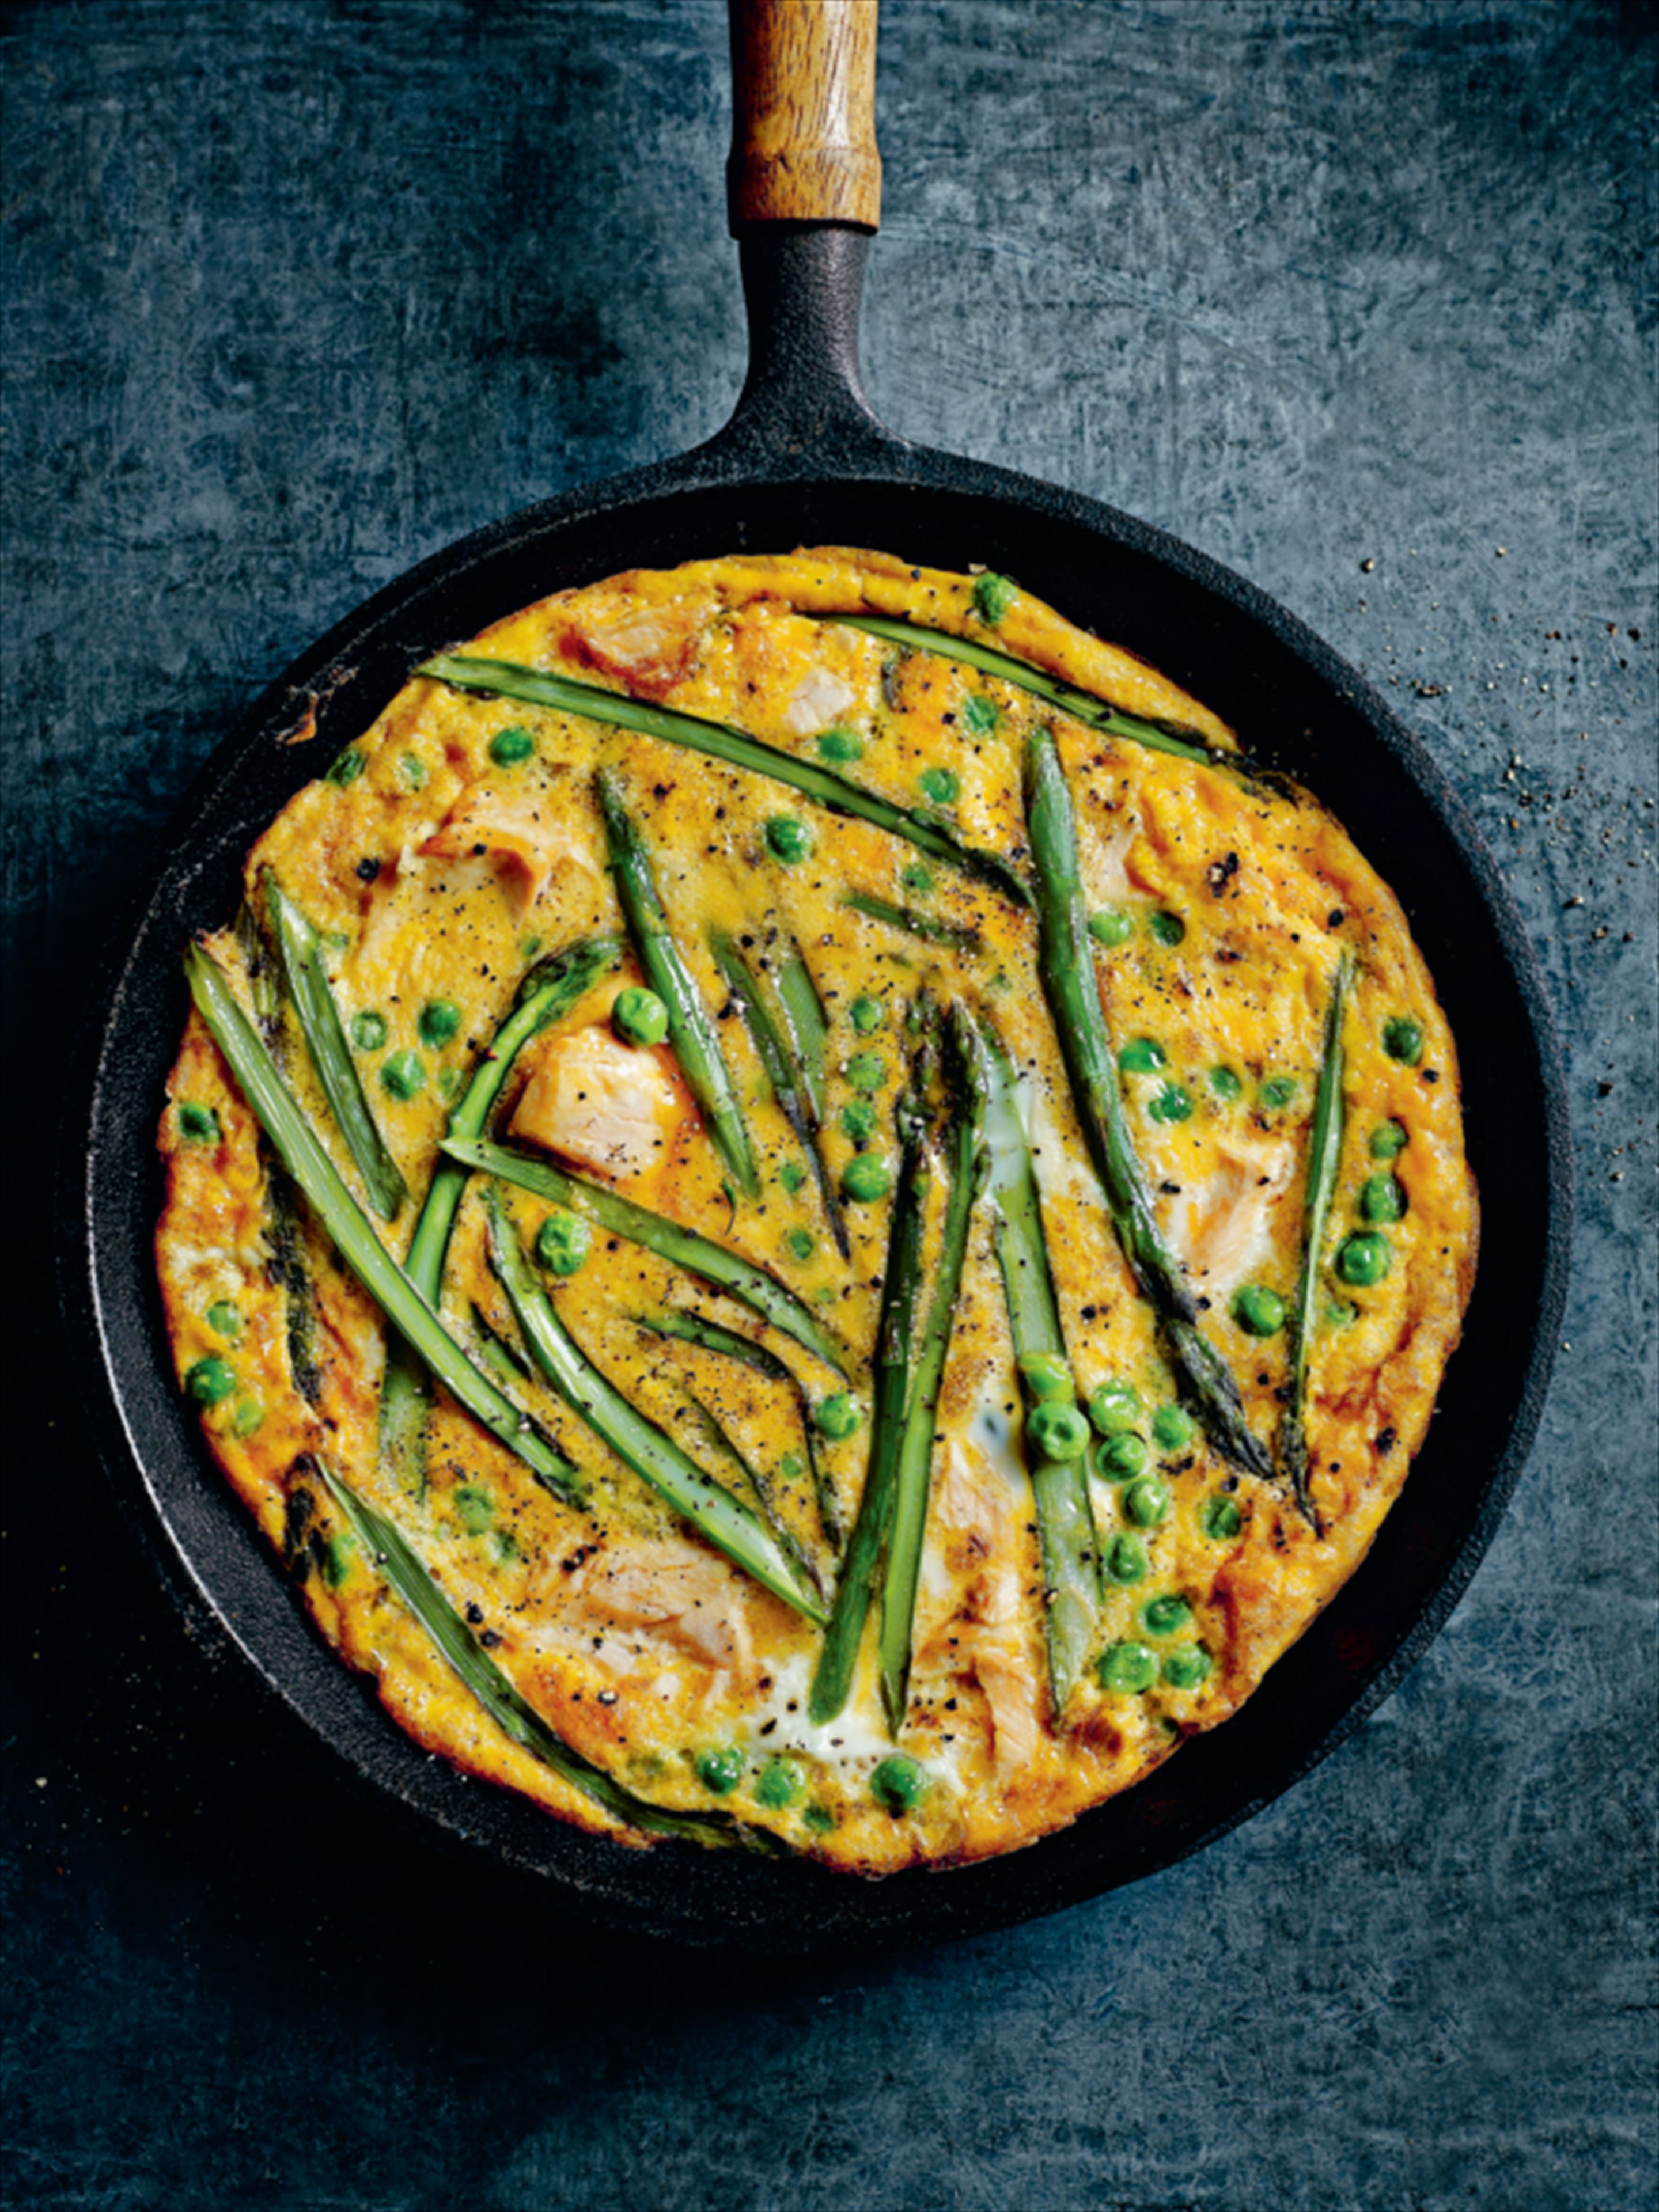 Salmon, pea and asparagus frittata